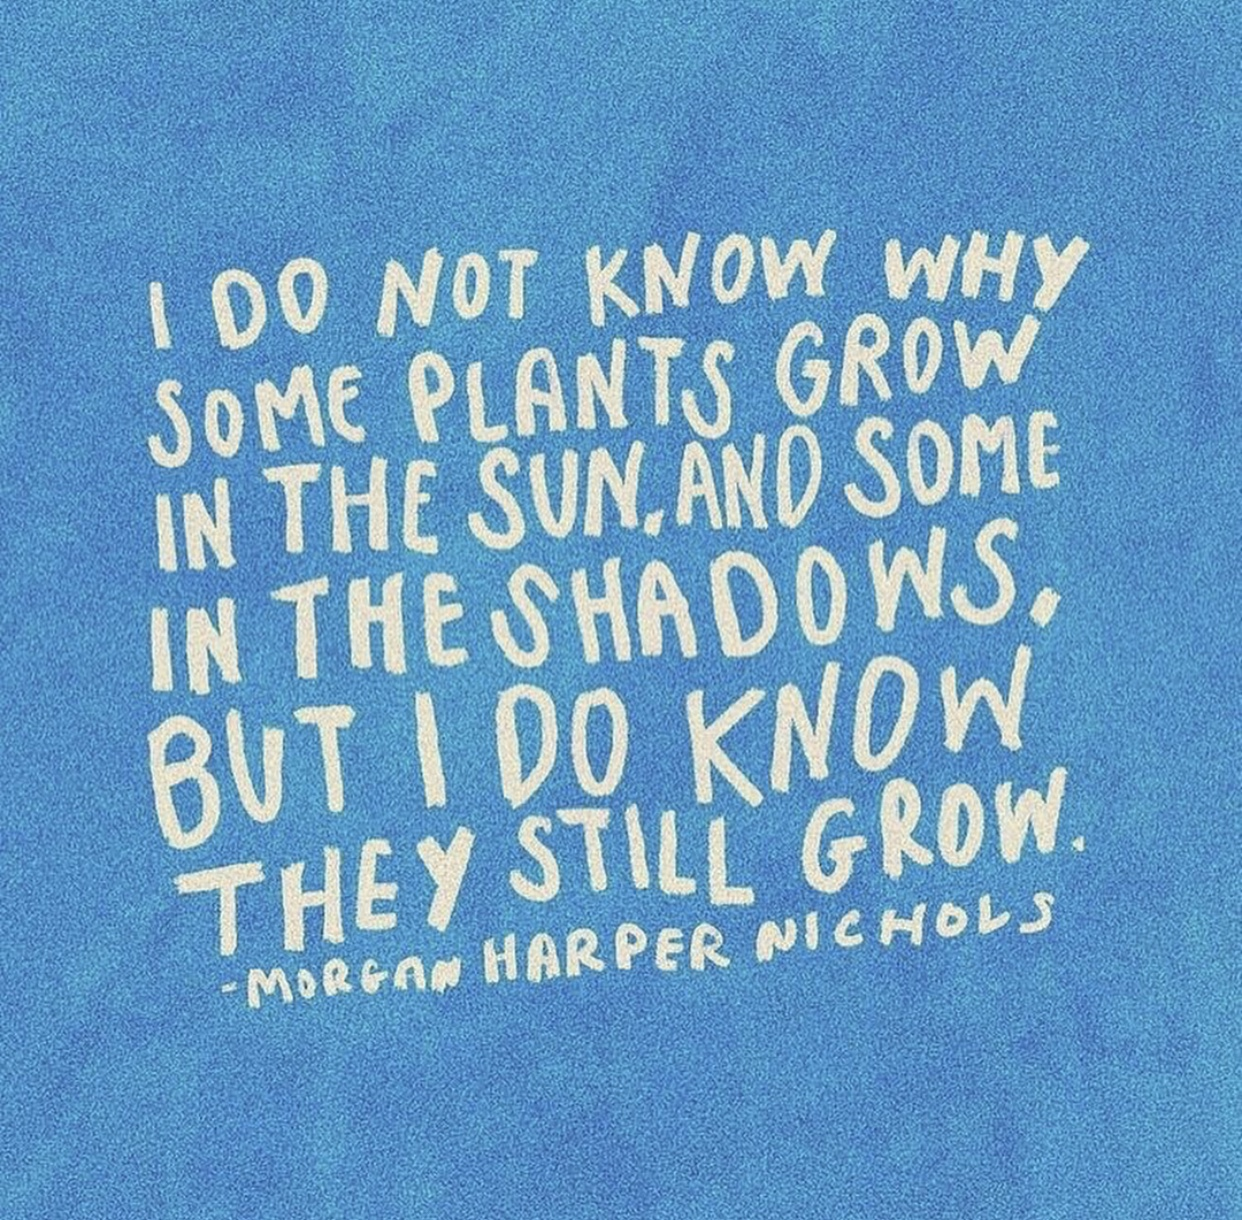 Sometimes When You're in a Dark Place You Think You've Been Buried, But Actually You've Been Planted - Kristen Welch